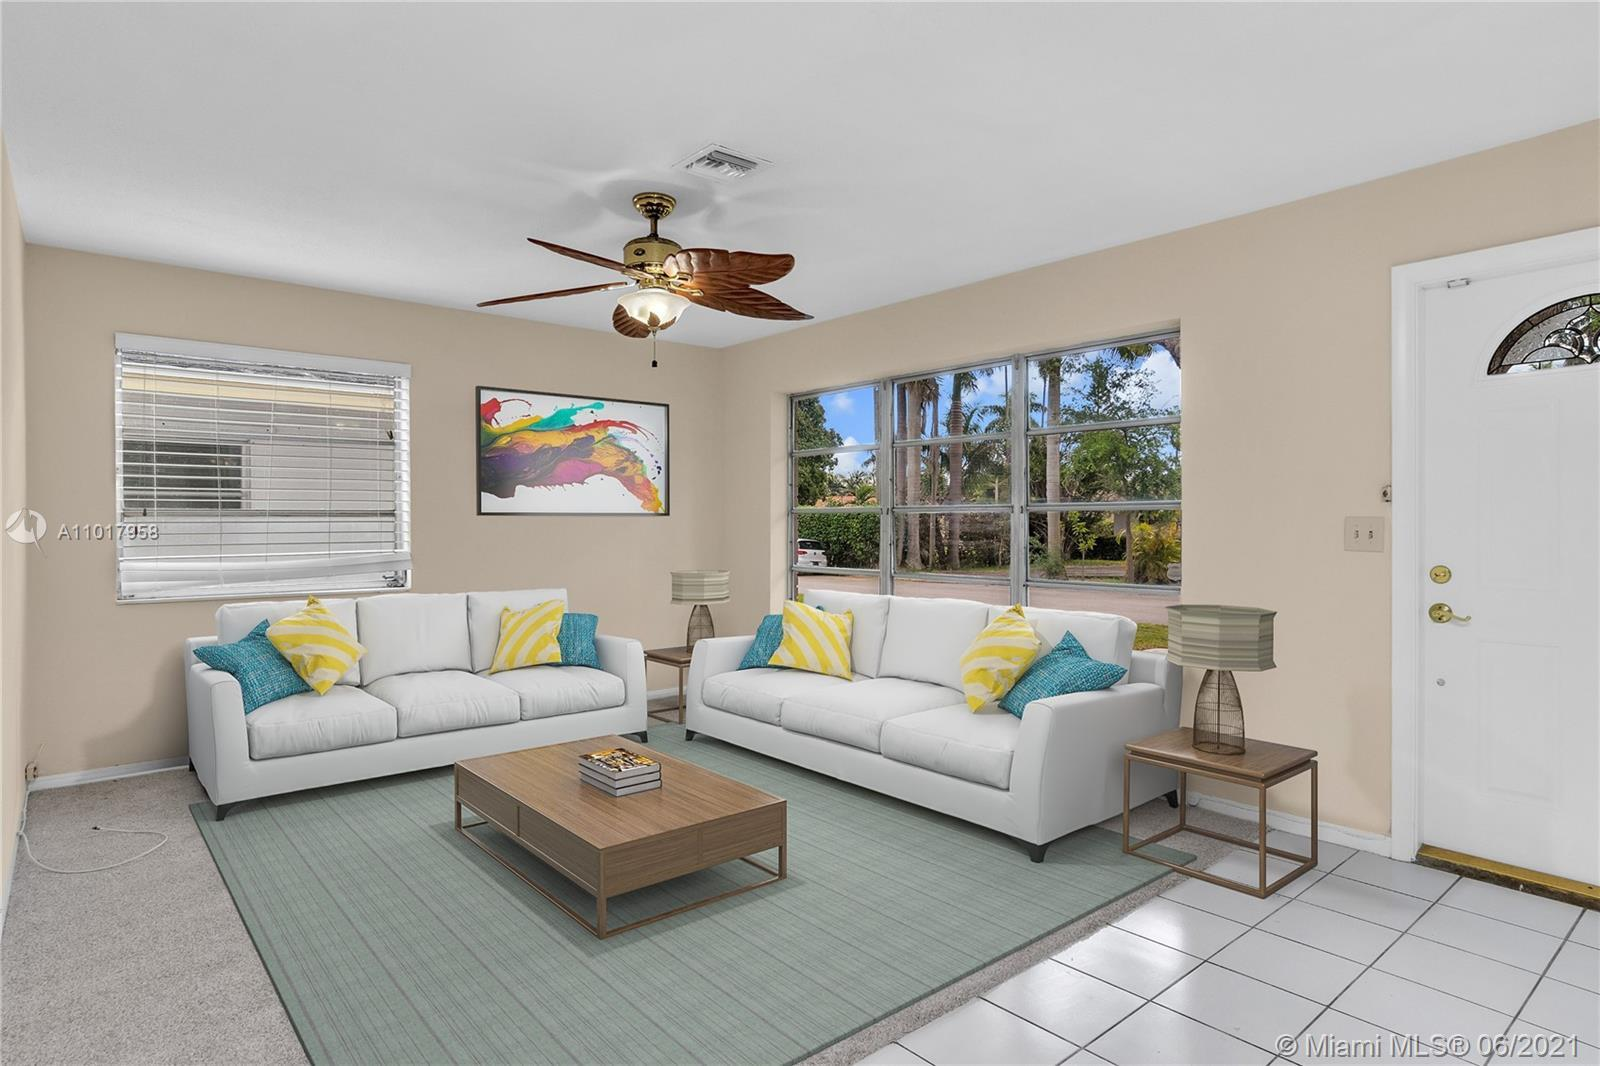 Great location! Conveniently, located just minutes from Northlake, Hollywood beach, Golf course, Boa